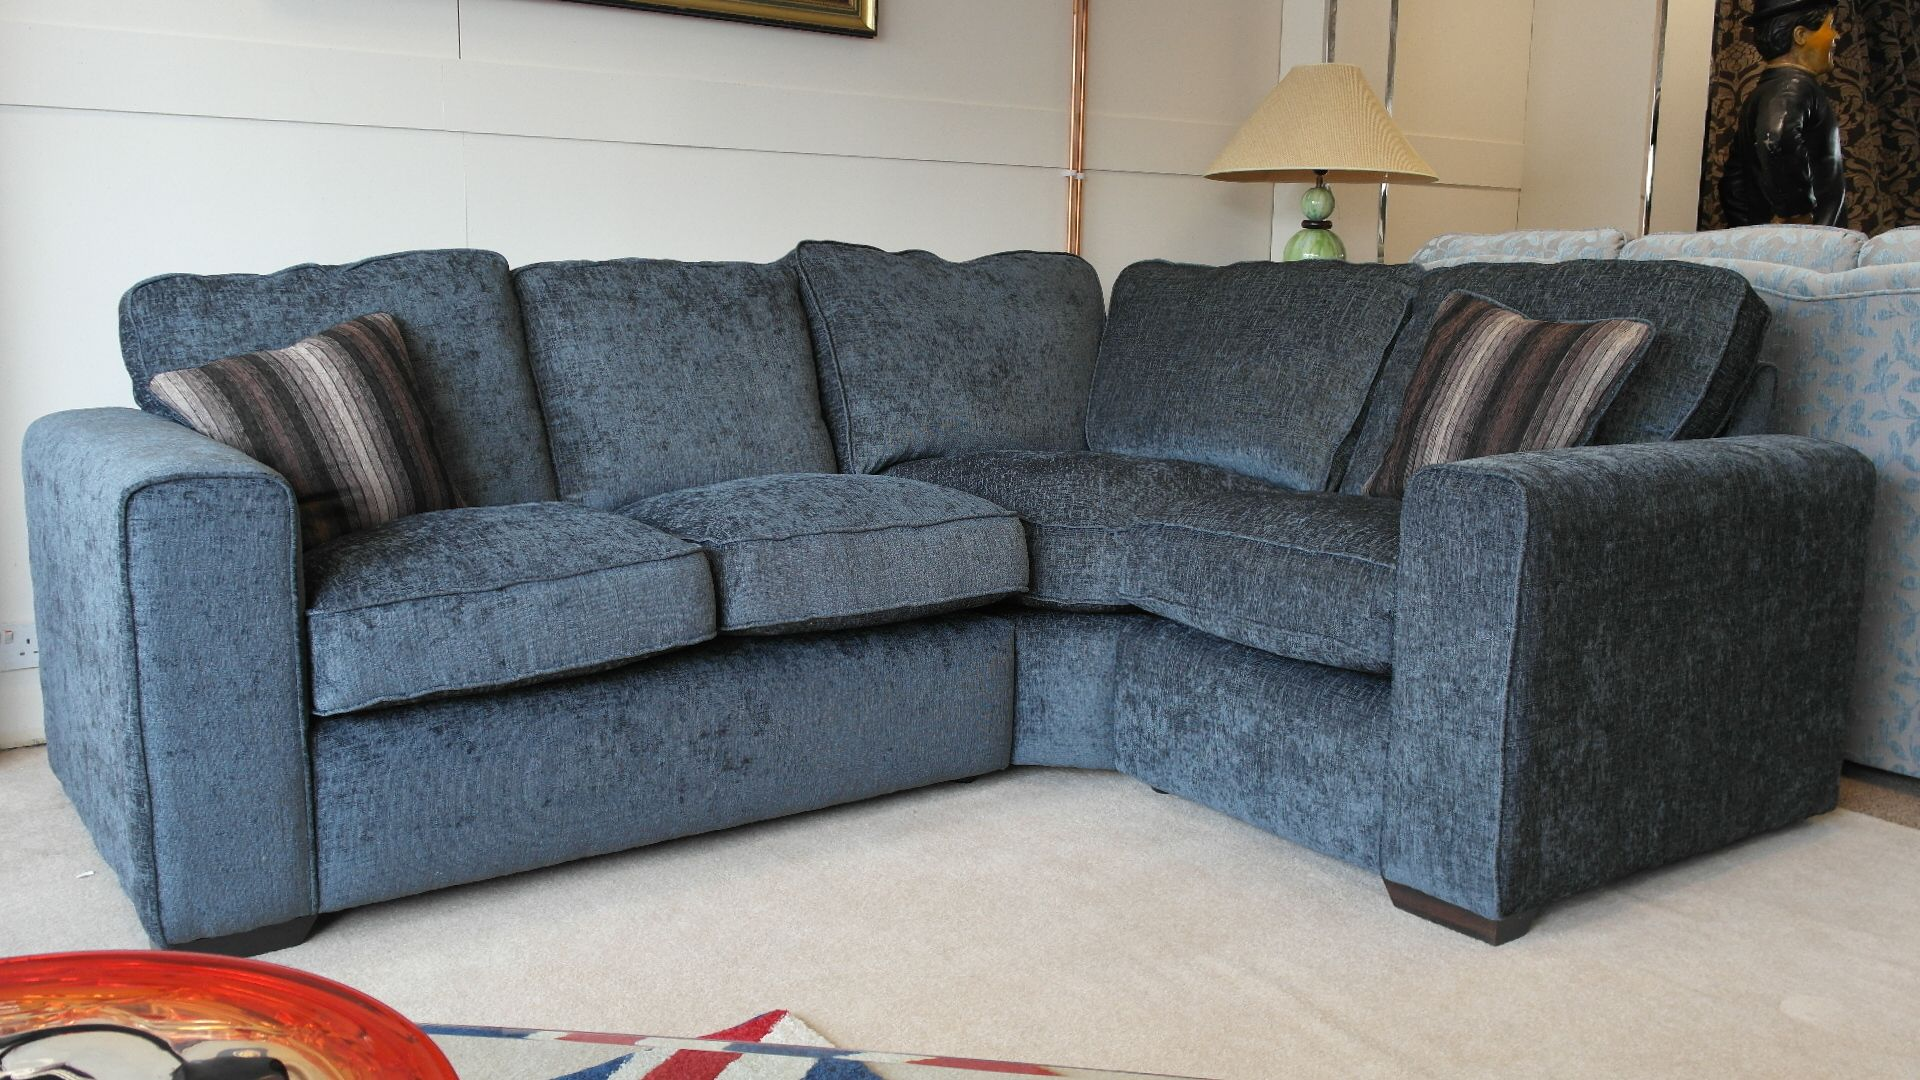 discontinued sofas uk crushed velvet mink corner sofa clearance awesome home